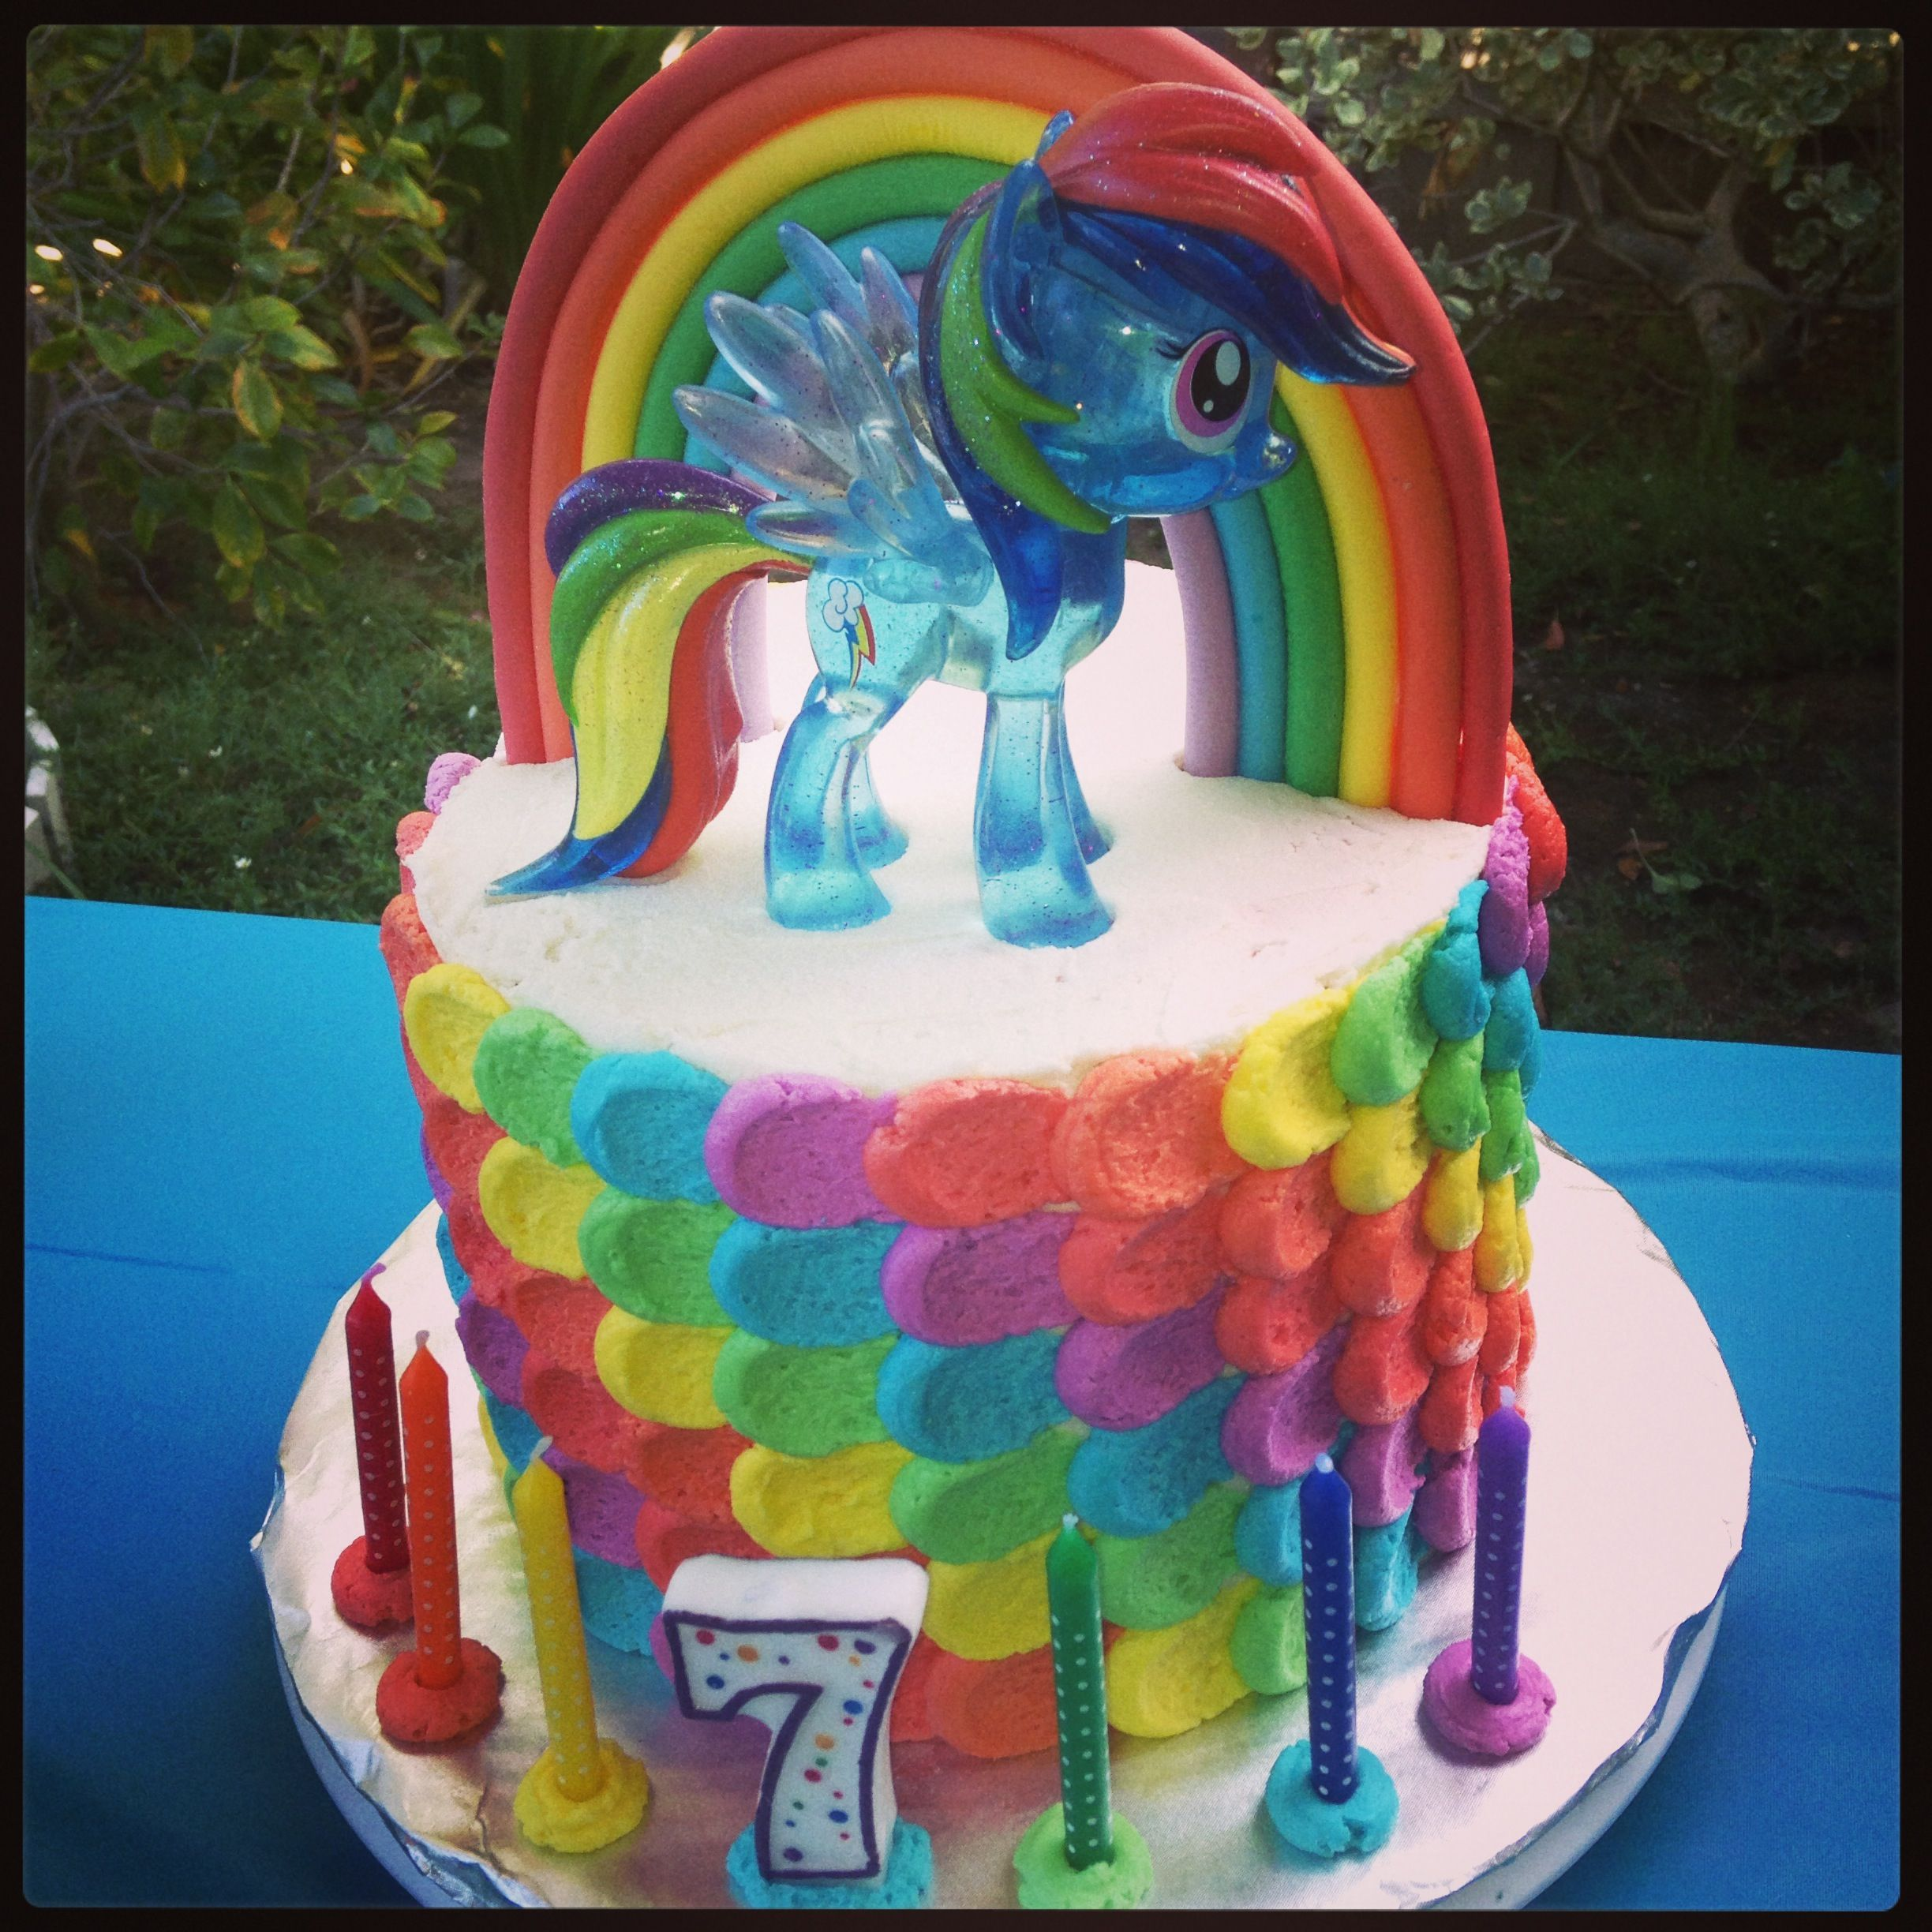 Sensational Rainbow Dash Cake I Made For My Daughters 7Th Birthday Funny Birthday Cards Online Fluifree Goldxyz